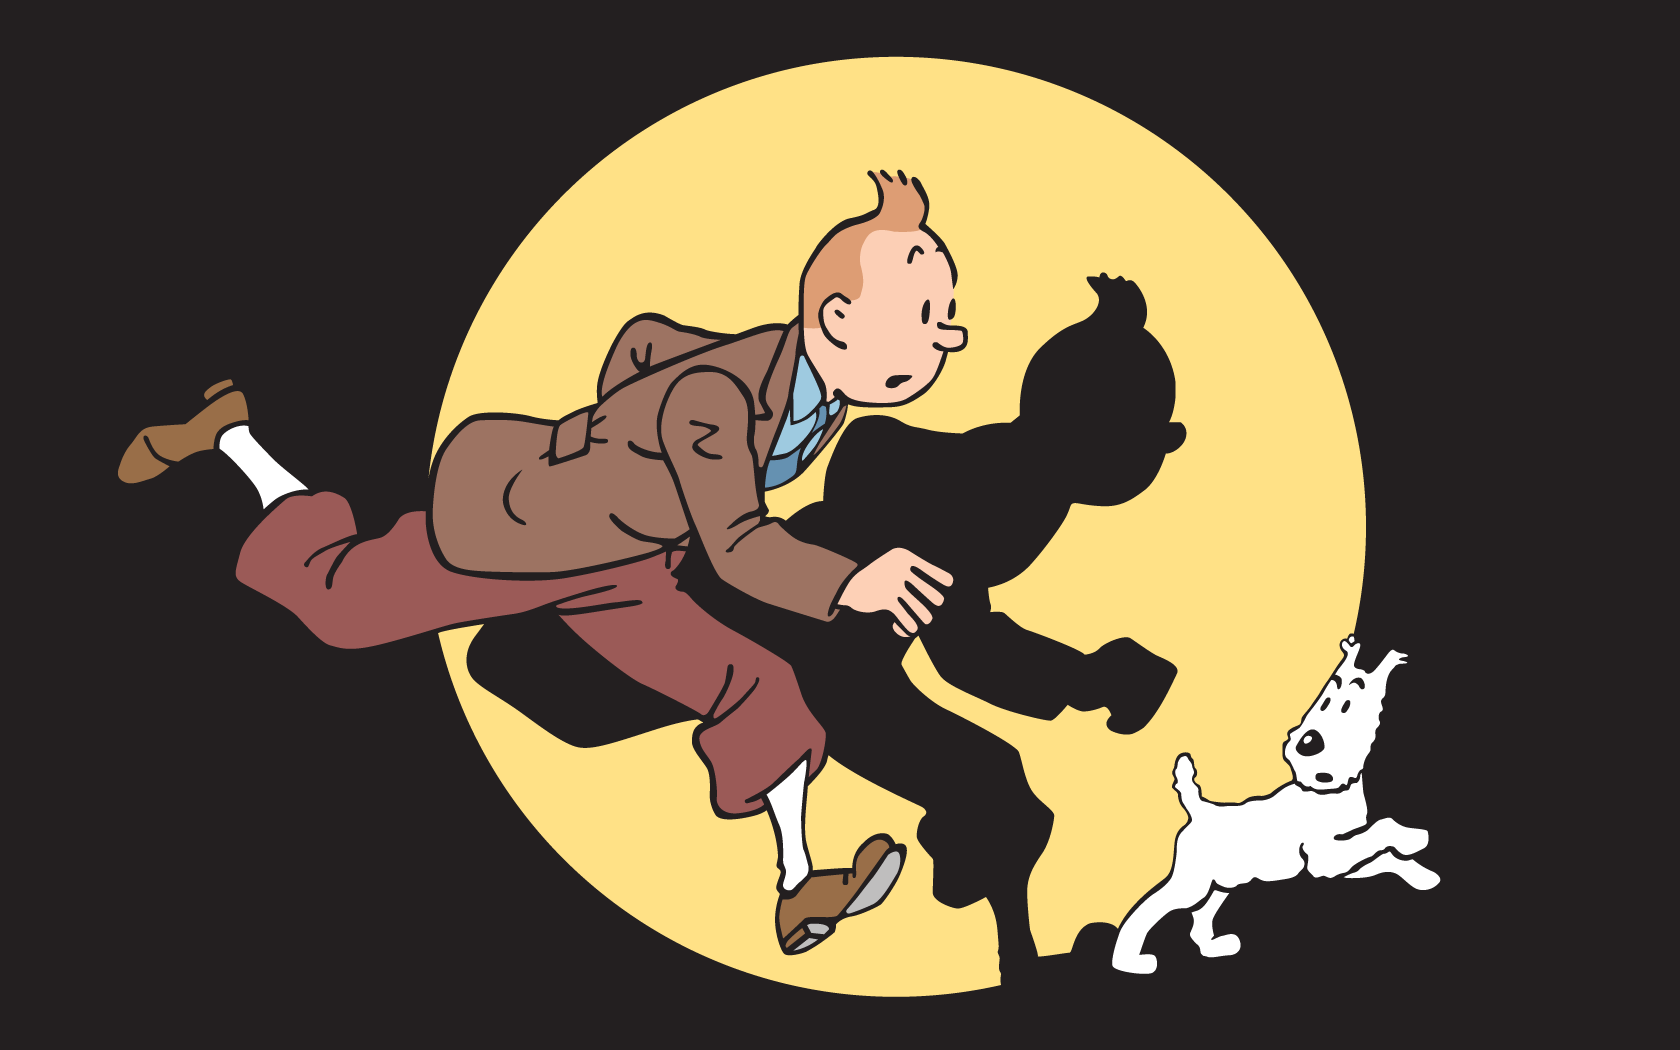 tintin-and-snowy-in-cartoons-and-destinations